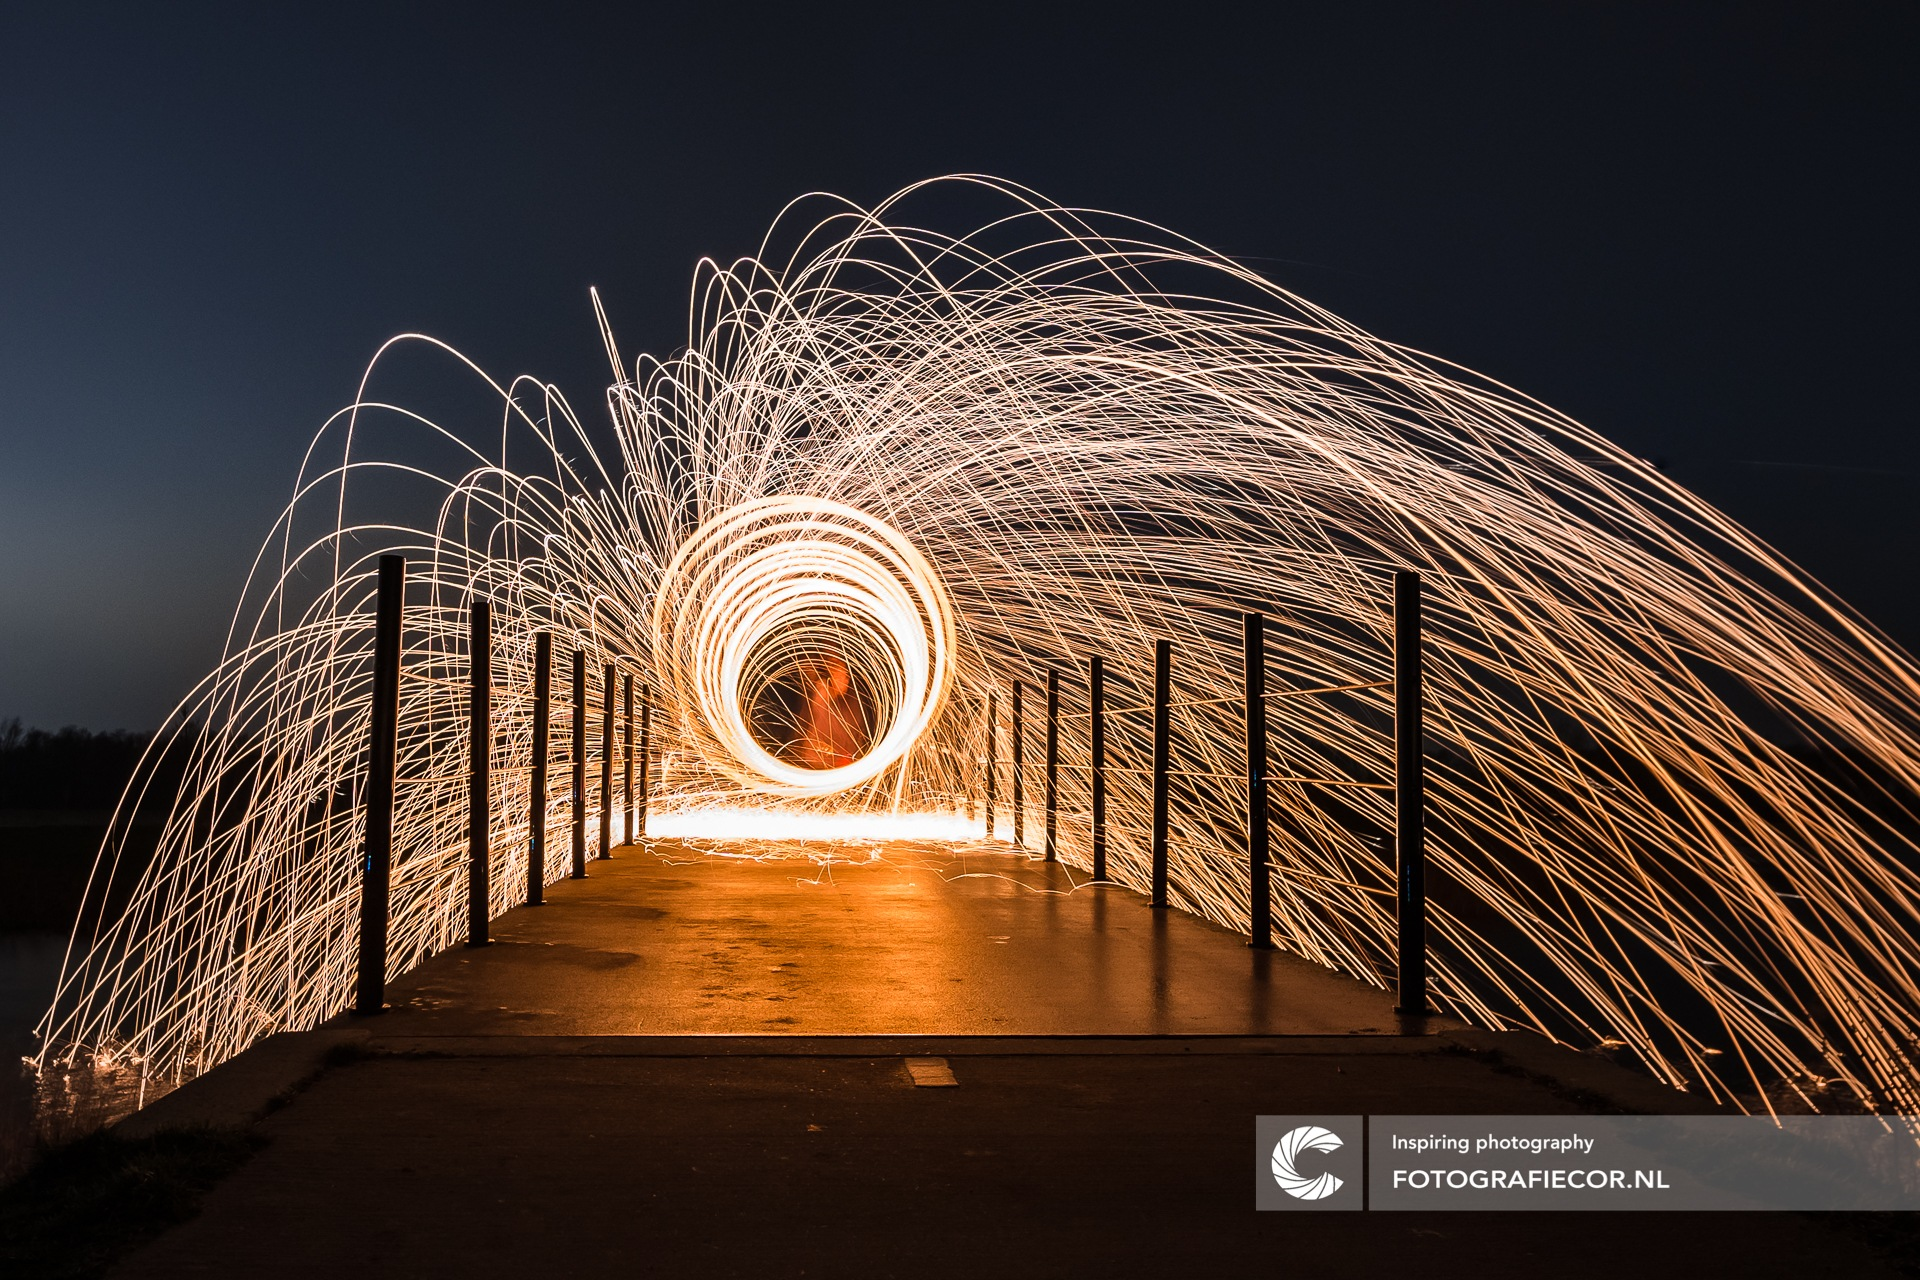 Burn some magic in the night by Cor van der Waal